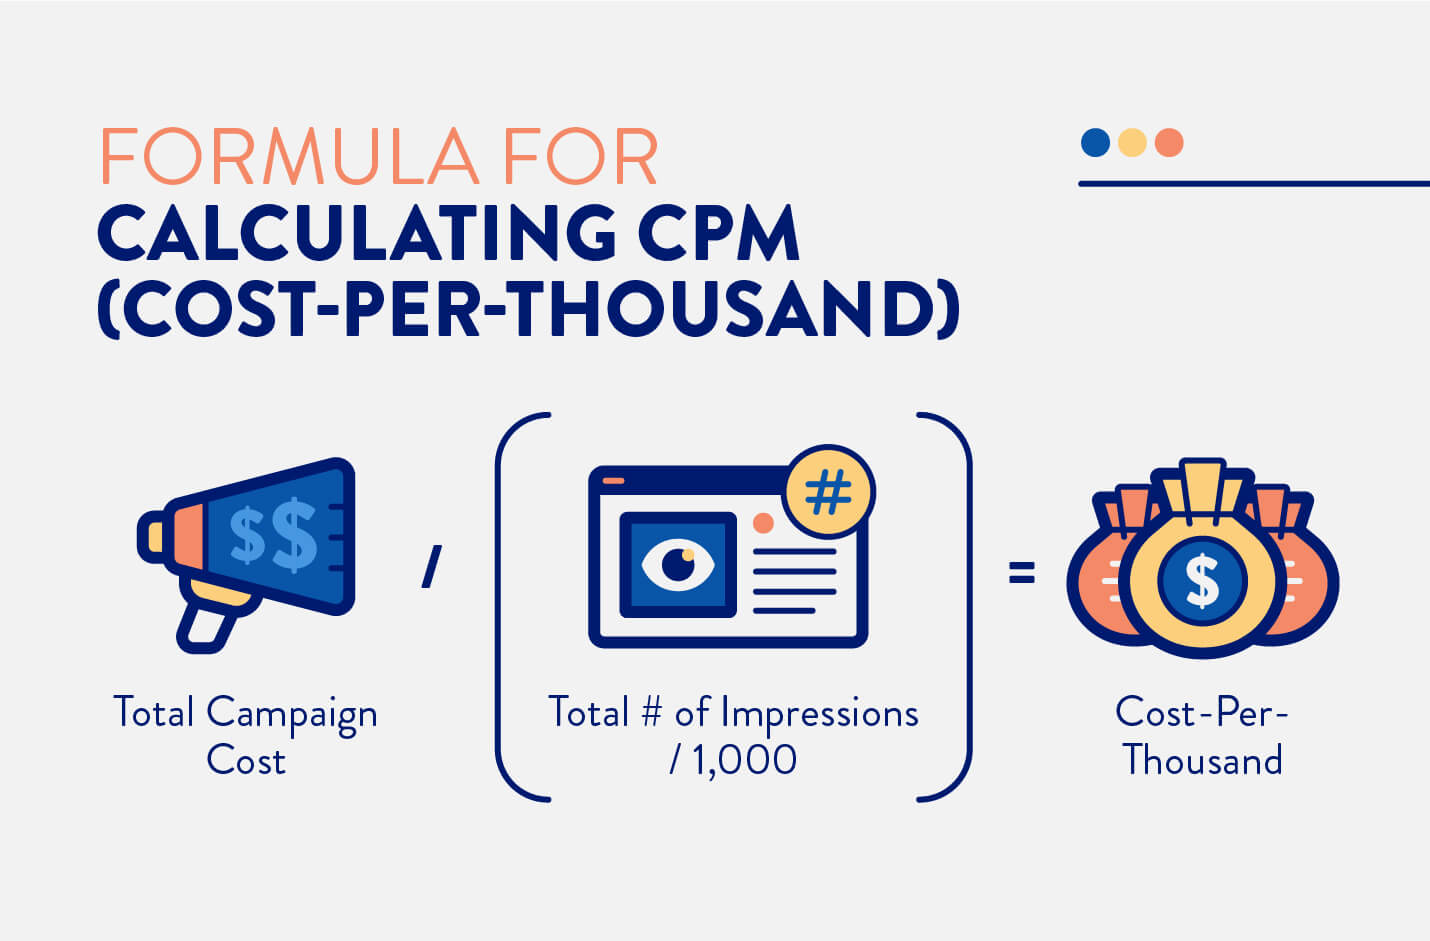 CPM cost per thousand formula